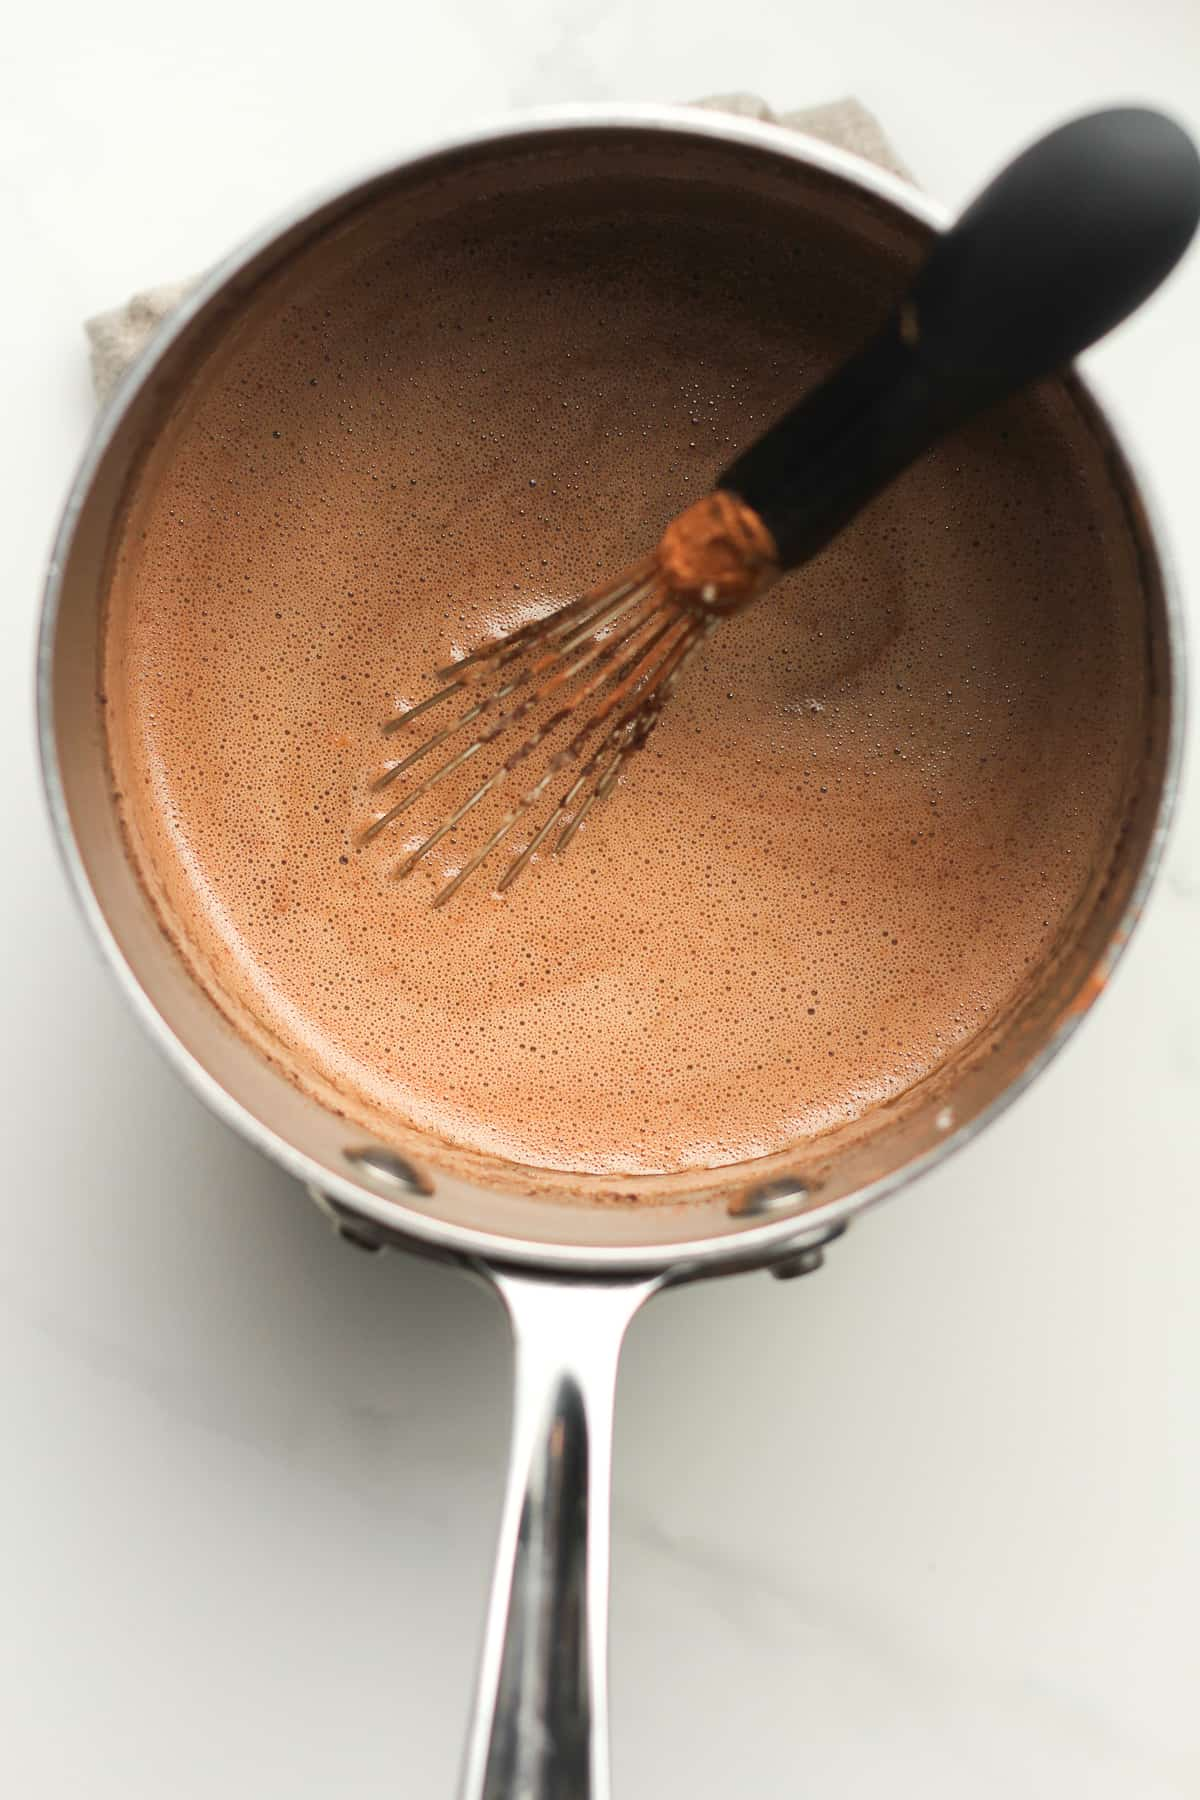 A pan of the hot tempered egg and chocolate peanut butter mixture with a whisk.